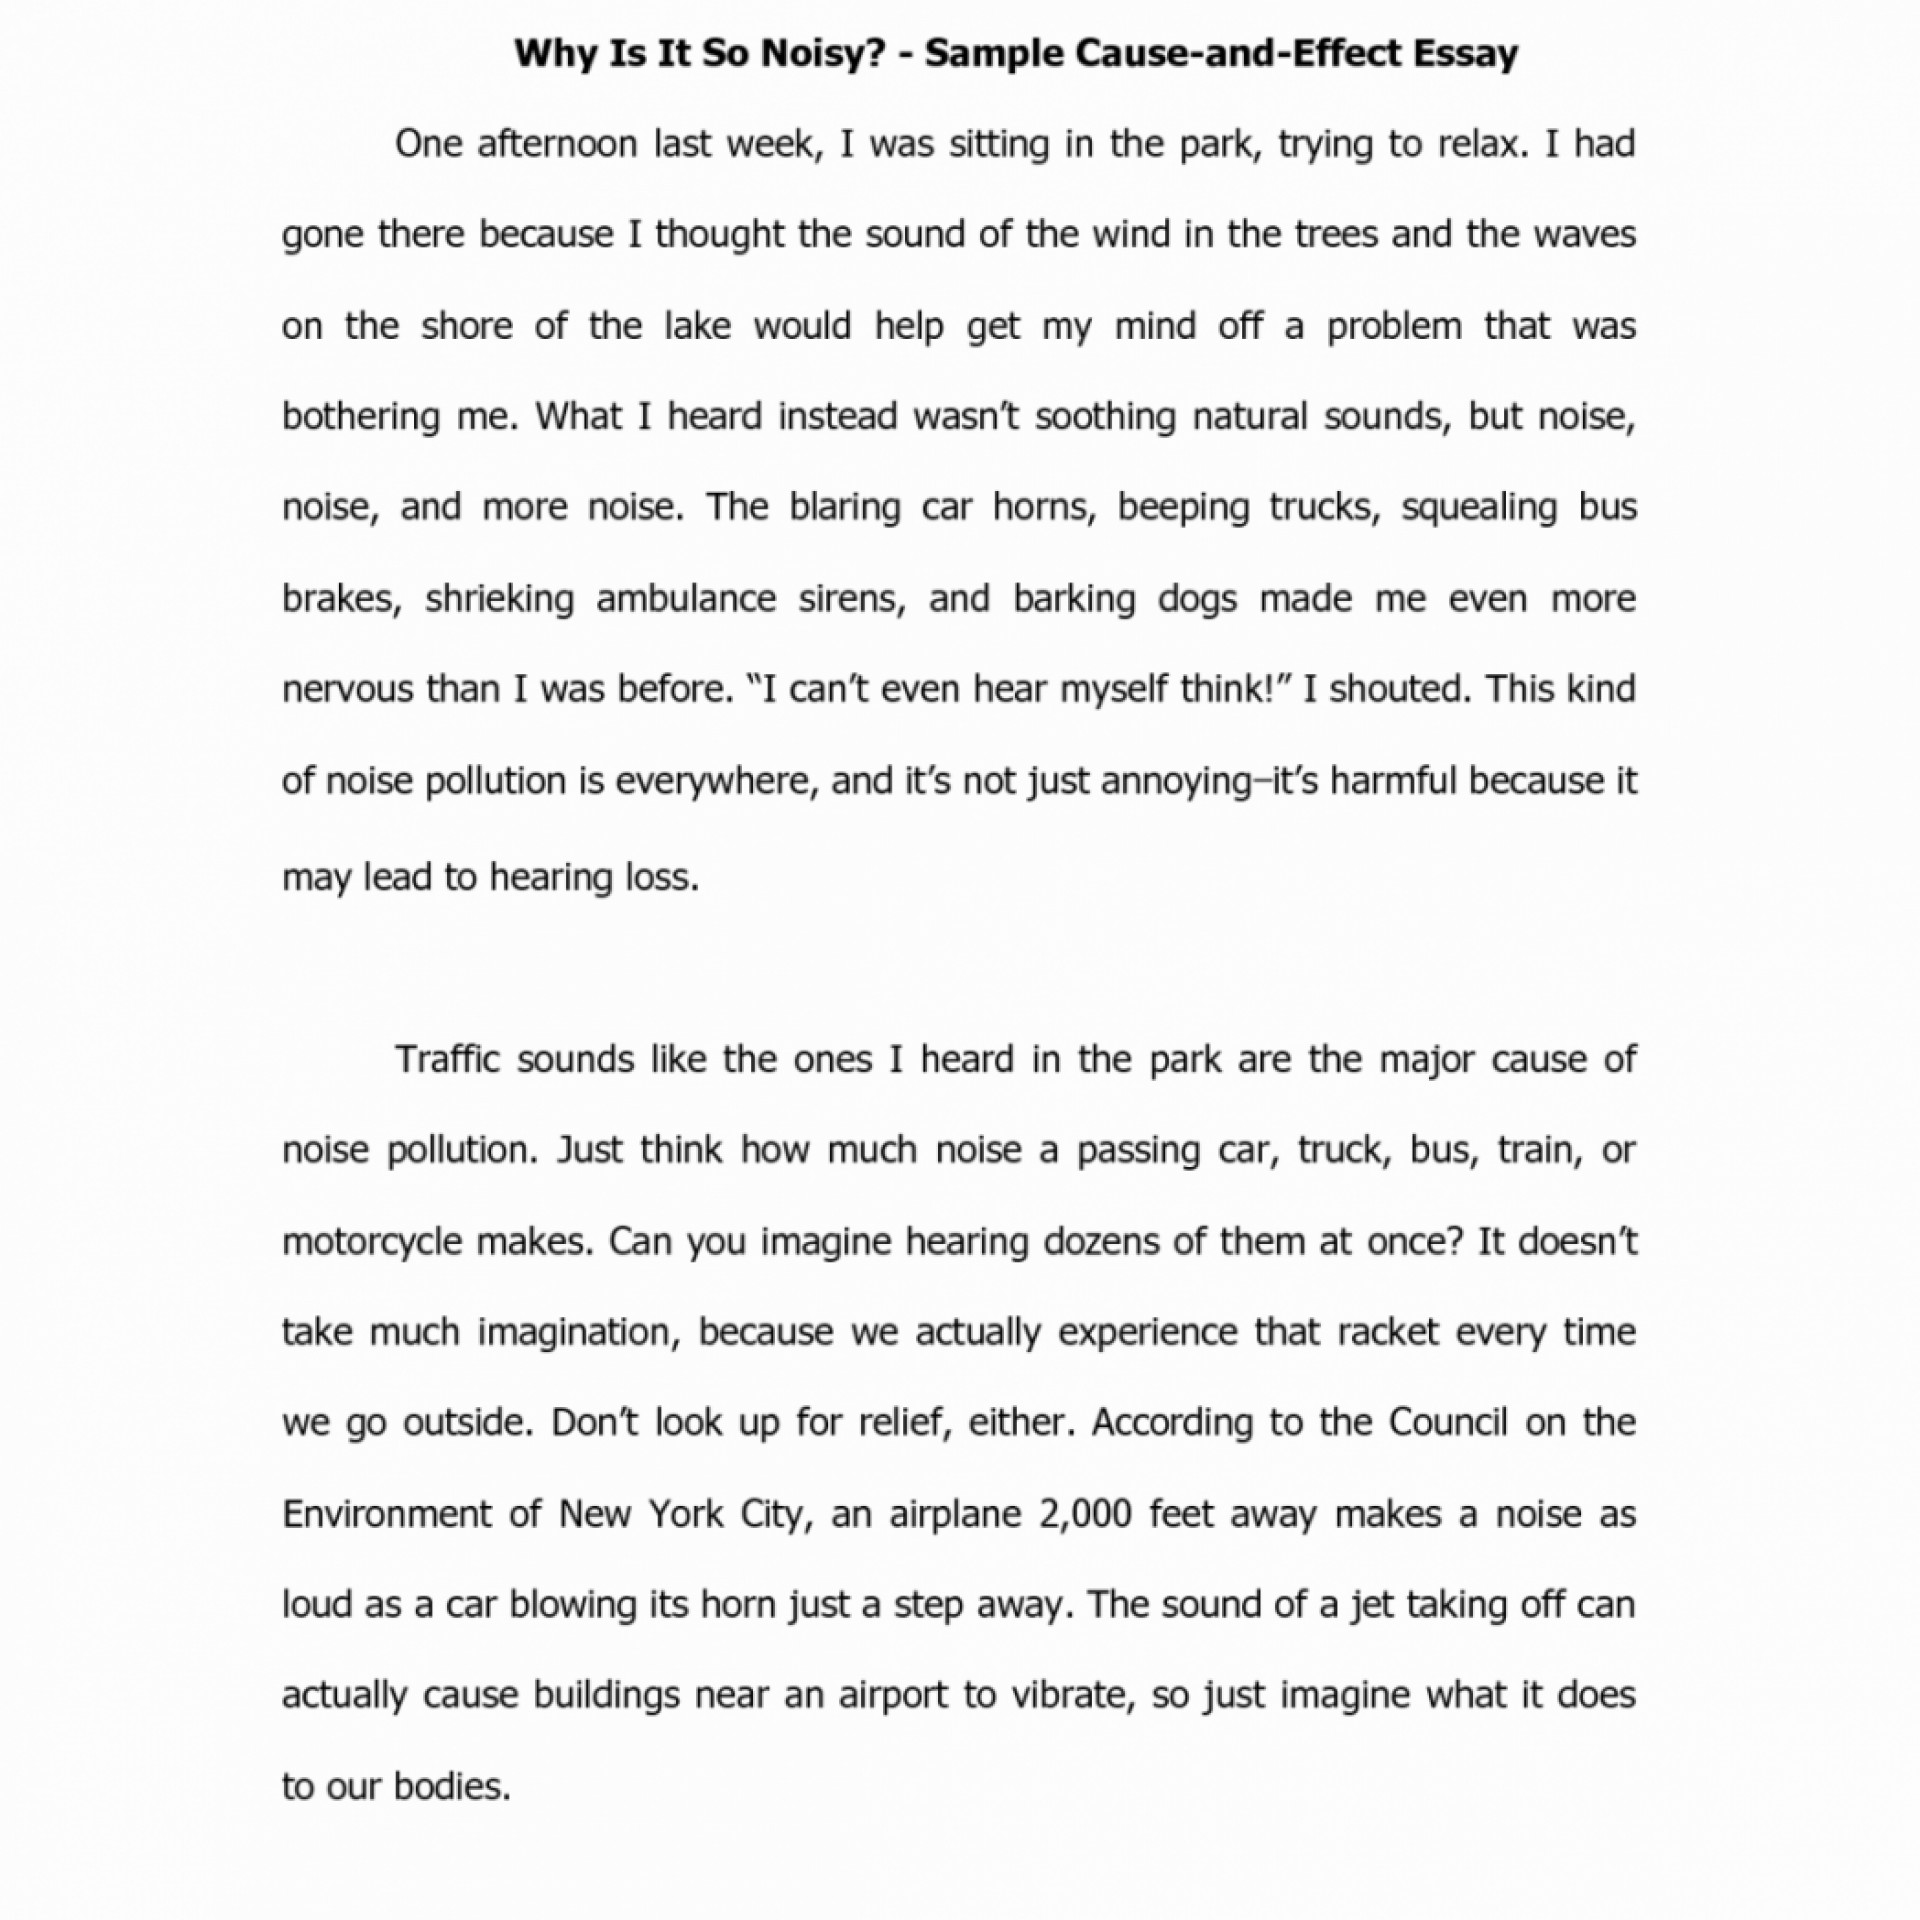 027 Cause And Effect Essays Format Best Of For Or Good Cover Bystander Domino Analysis Ielts Free 6th Grade College Pdf Middle School 1048x1048 Amazing Essay Examples Divorce Writing 1920